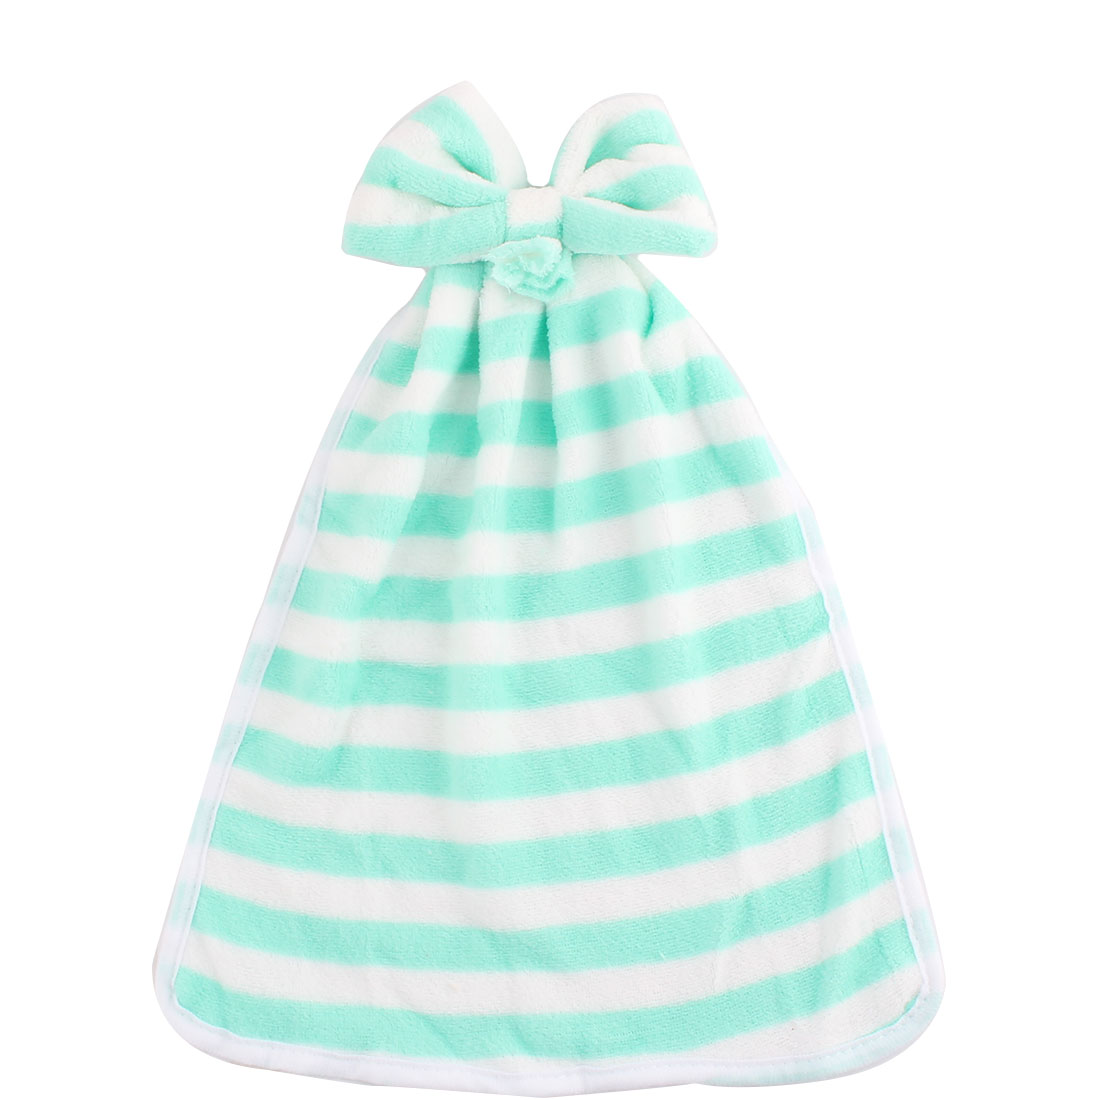 Home Kitchen Coral Velet Stripes Designed Wall Hanging Hand Towel Green White